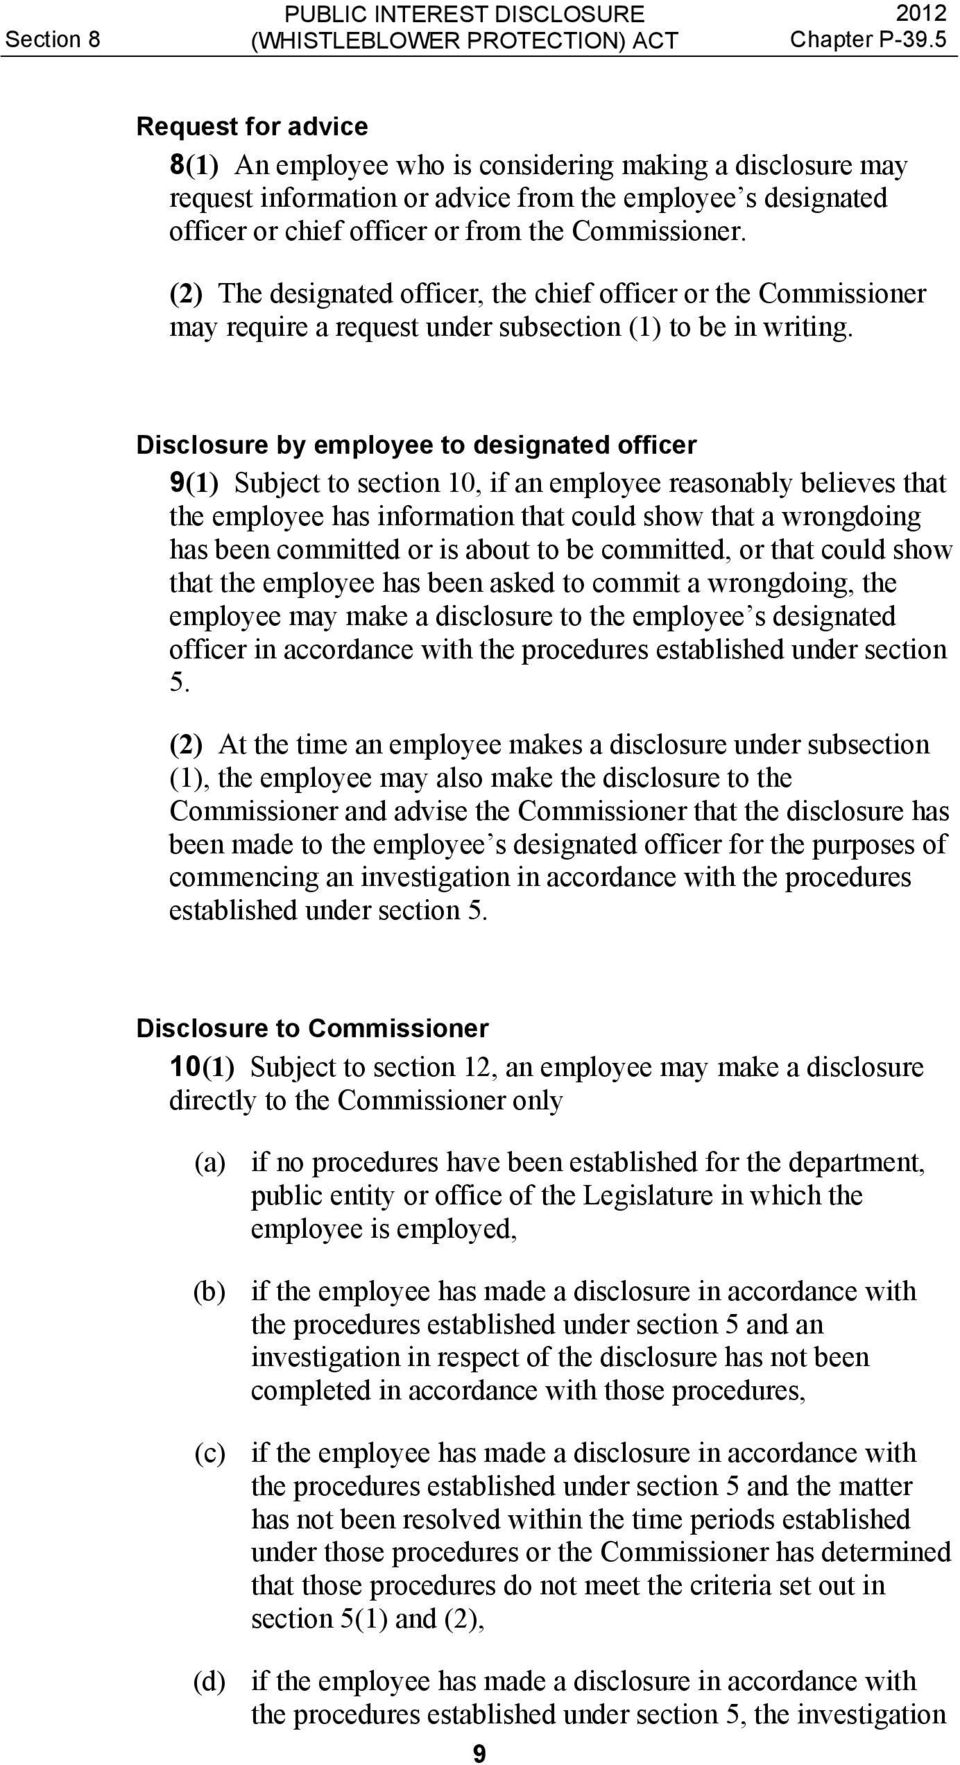 Disclosure by employee to designated officer 9(1) Subject to section 10, if an employee reasonably believes that the employee has information that could show that a wrongdoing has been committed or